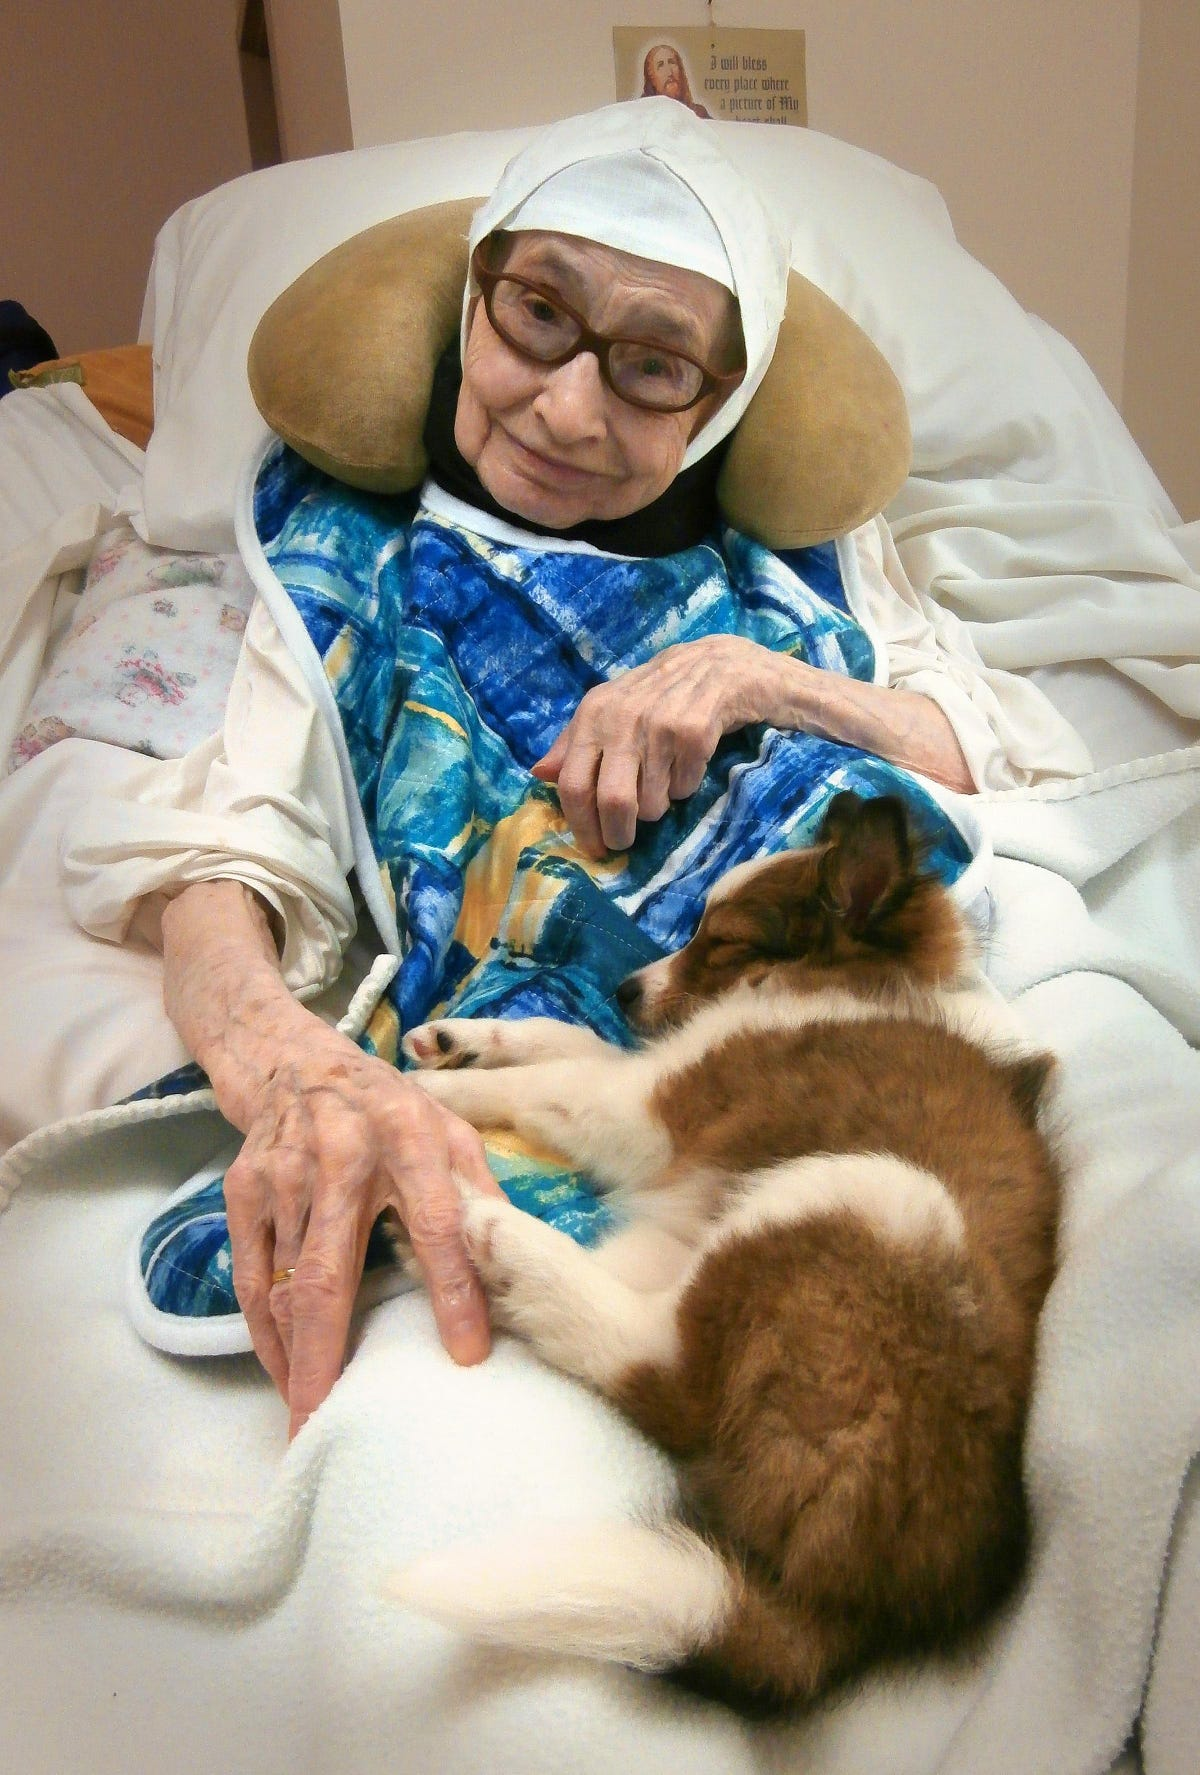 If you give a nun a puppy